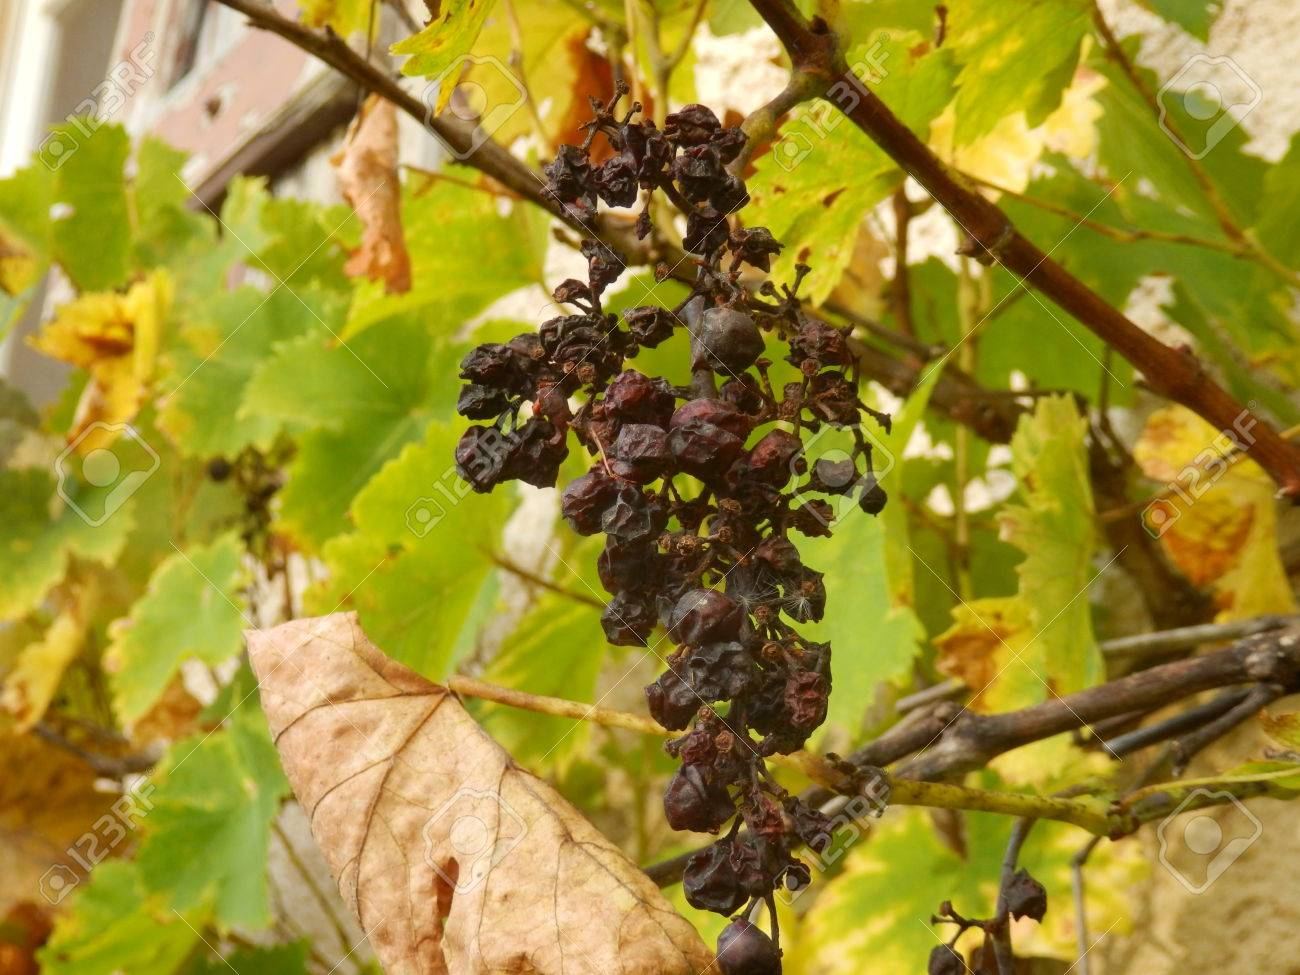 a-withering-bunch-of-grapes-on-the-vine